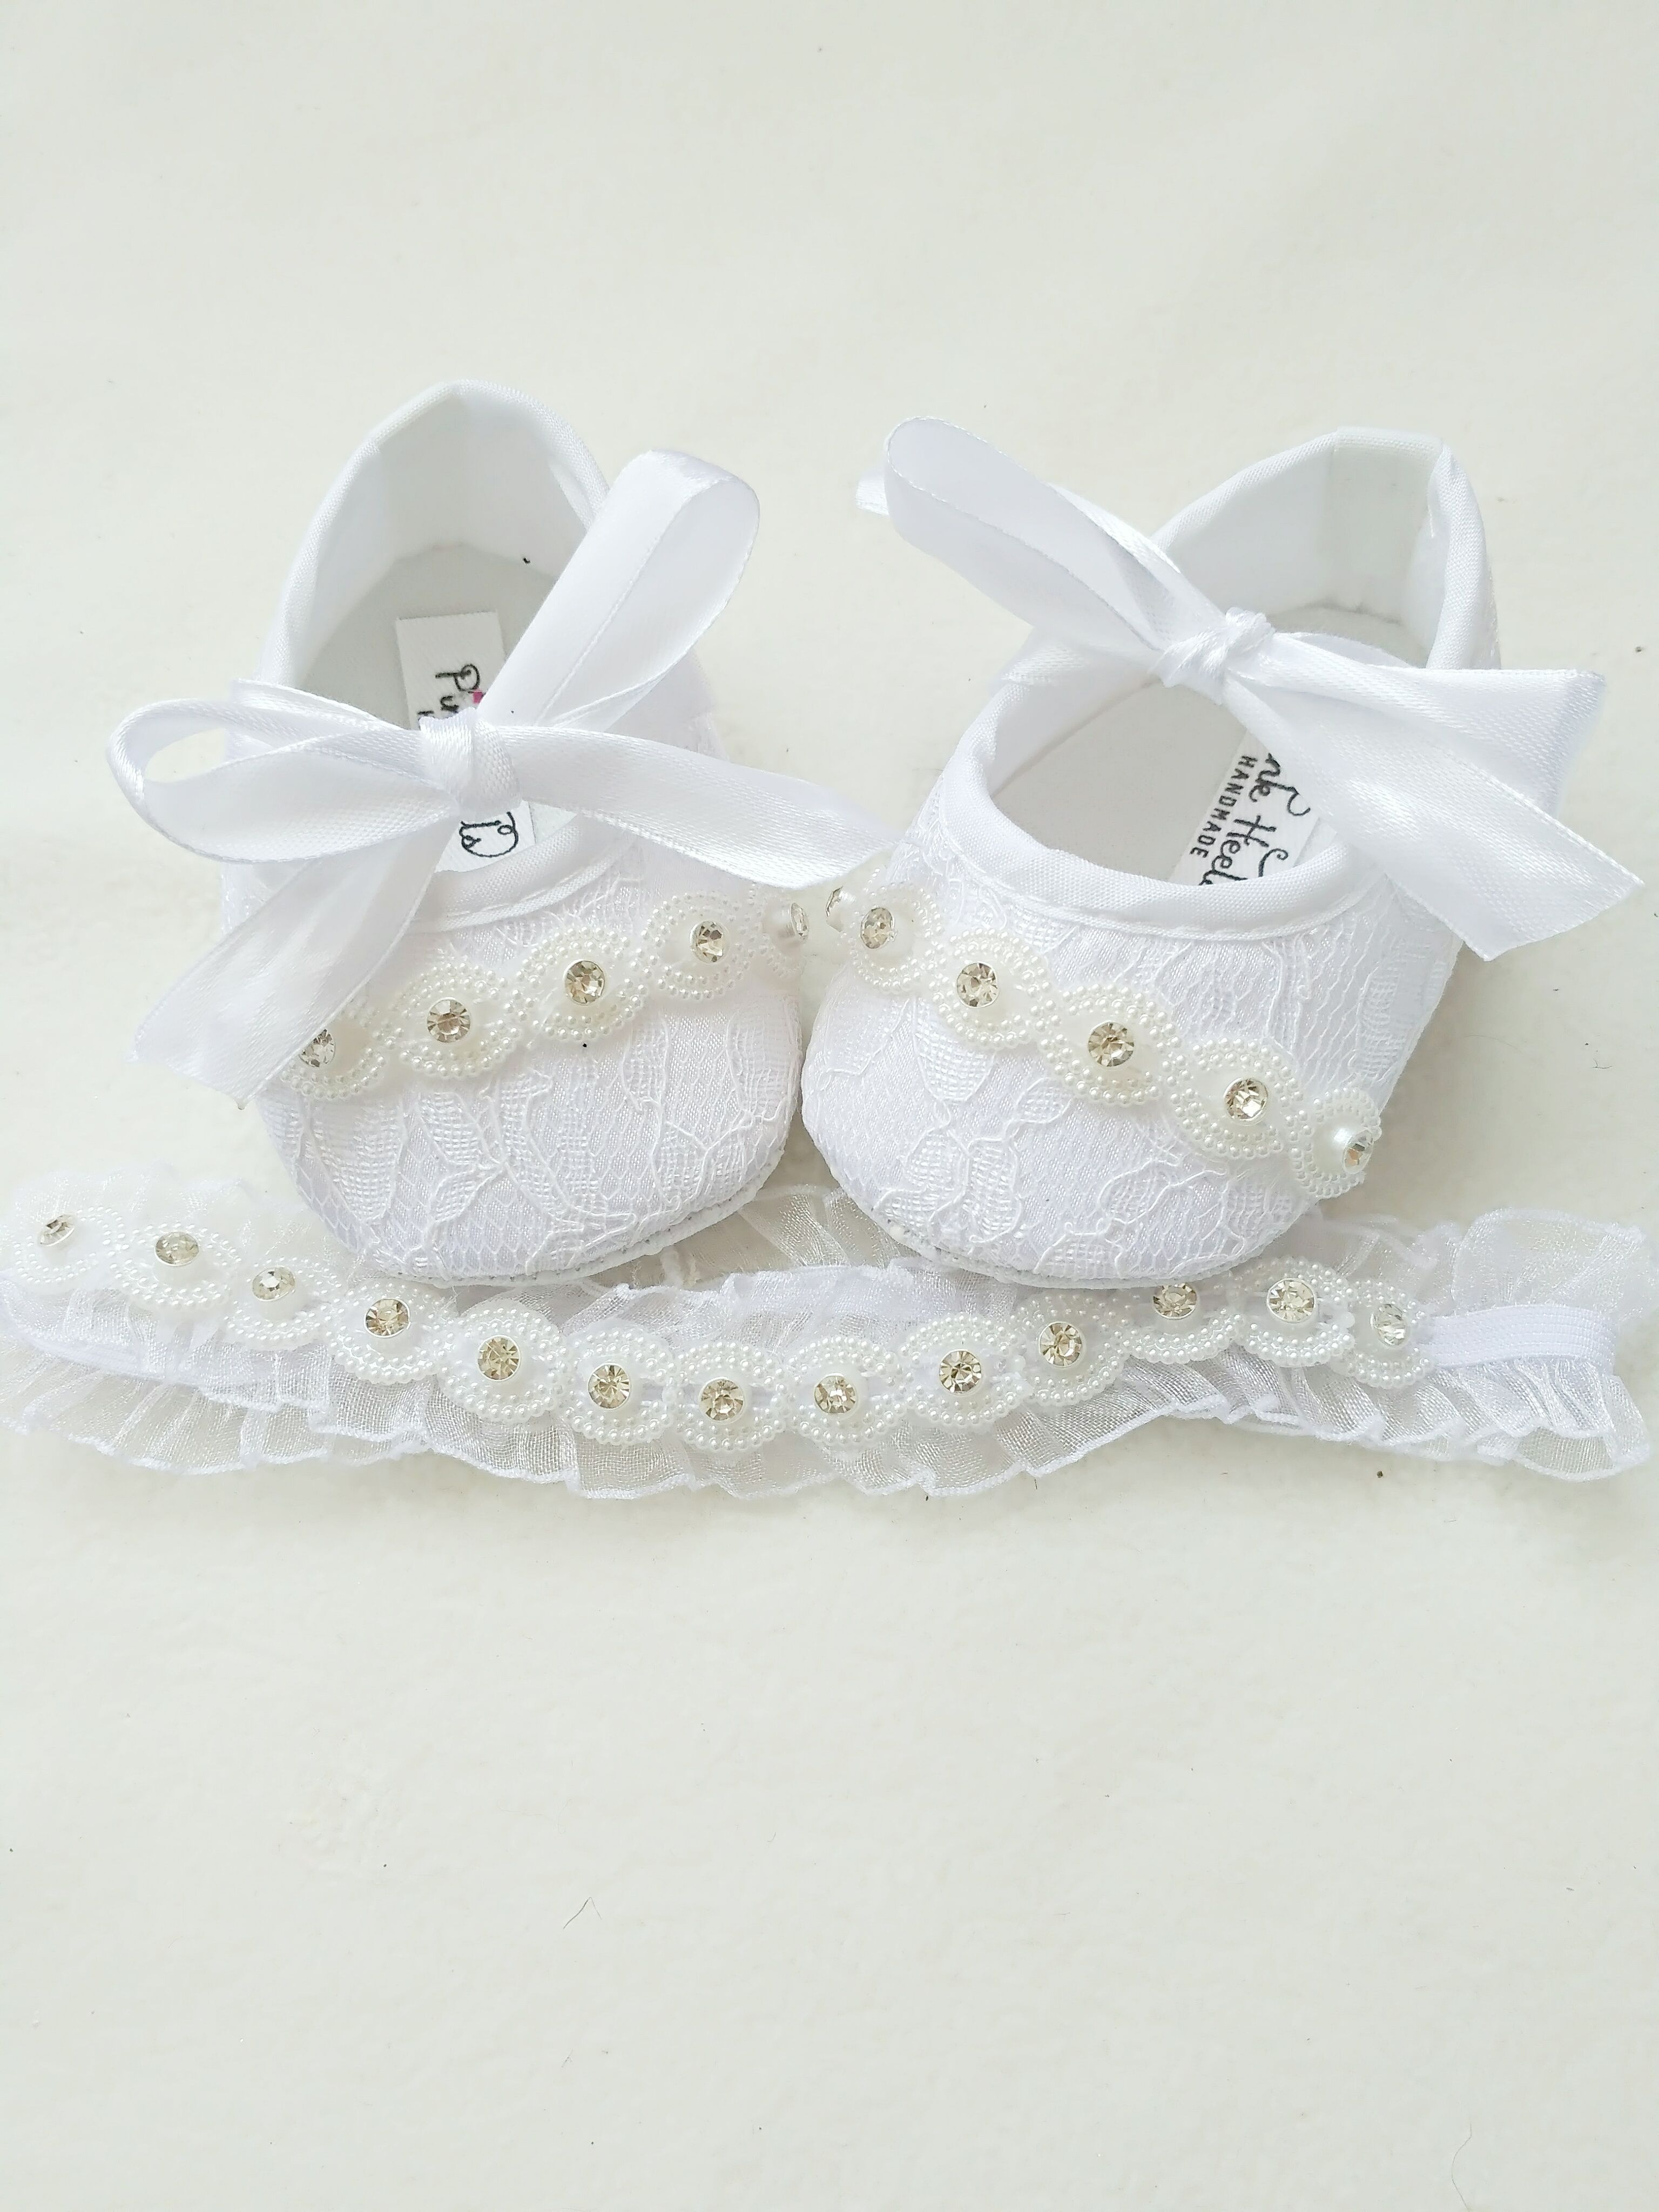 GIRLS BABY CHRISTENING PRAM SHOES WHITE WITH ROSE TODDLER INFANT SIZE 0-3 MONTHS